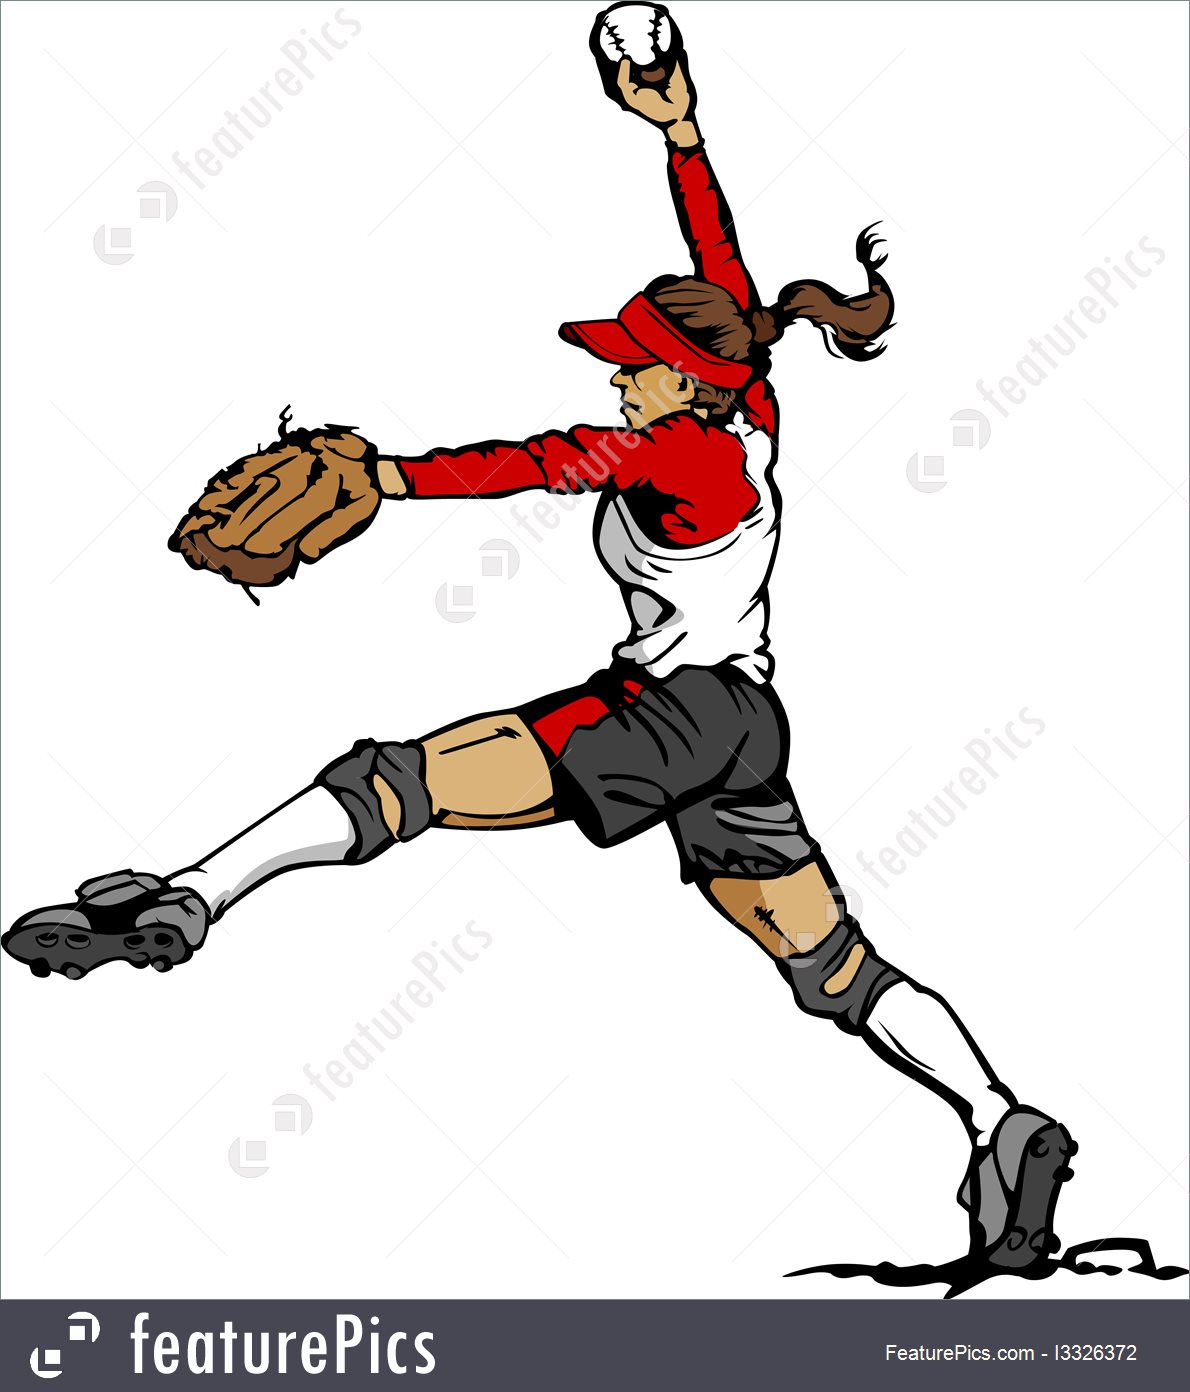 1190x1392 Fast Pitch Softball Pitcher Vector